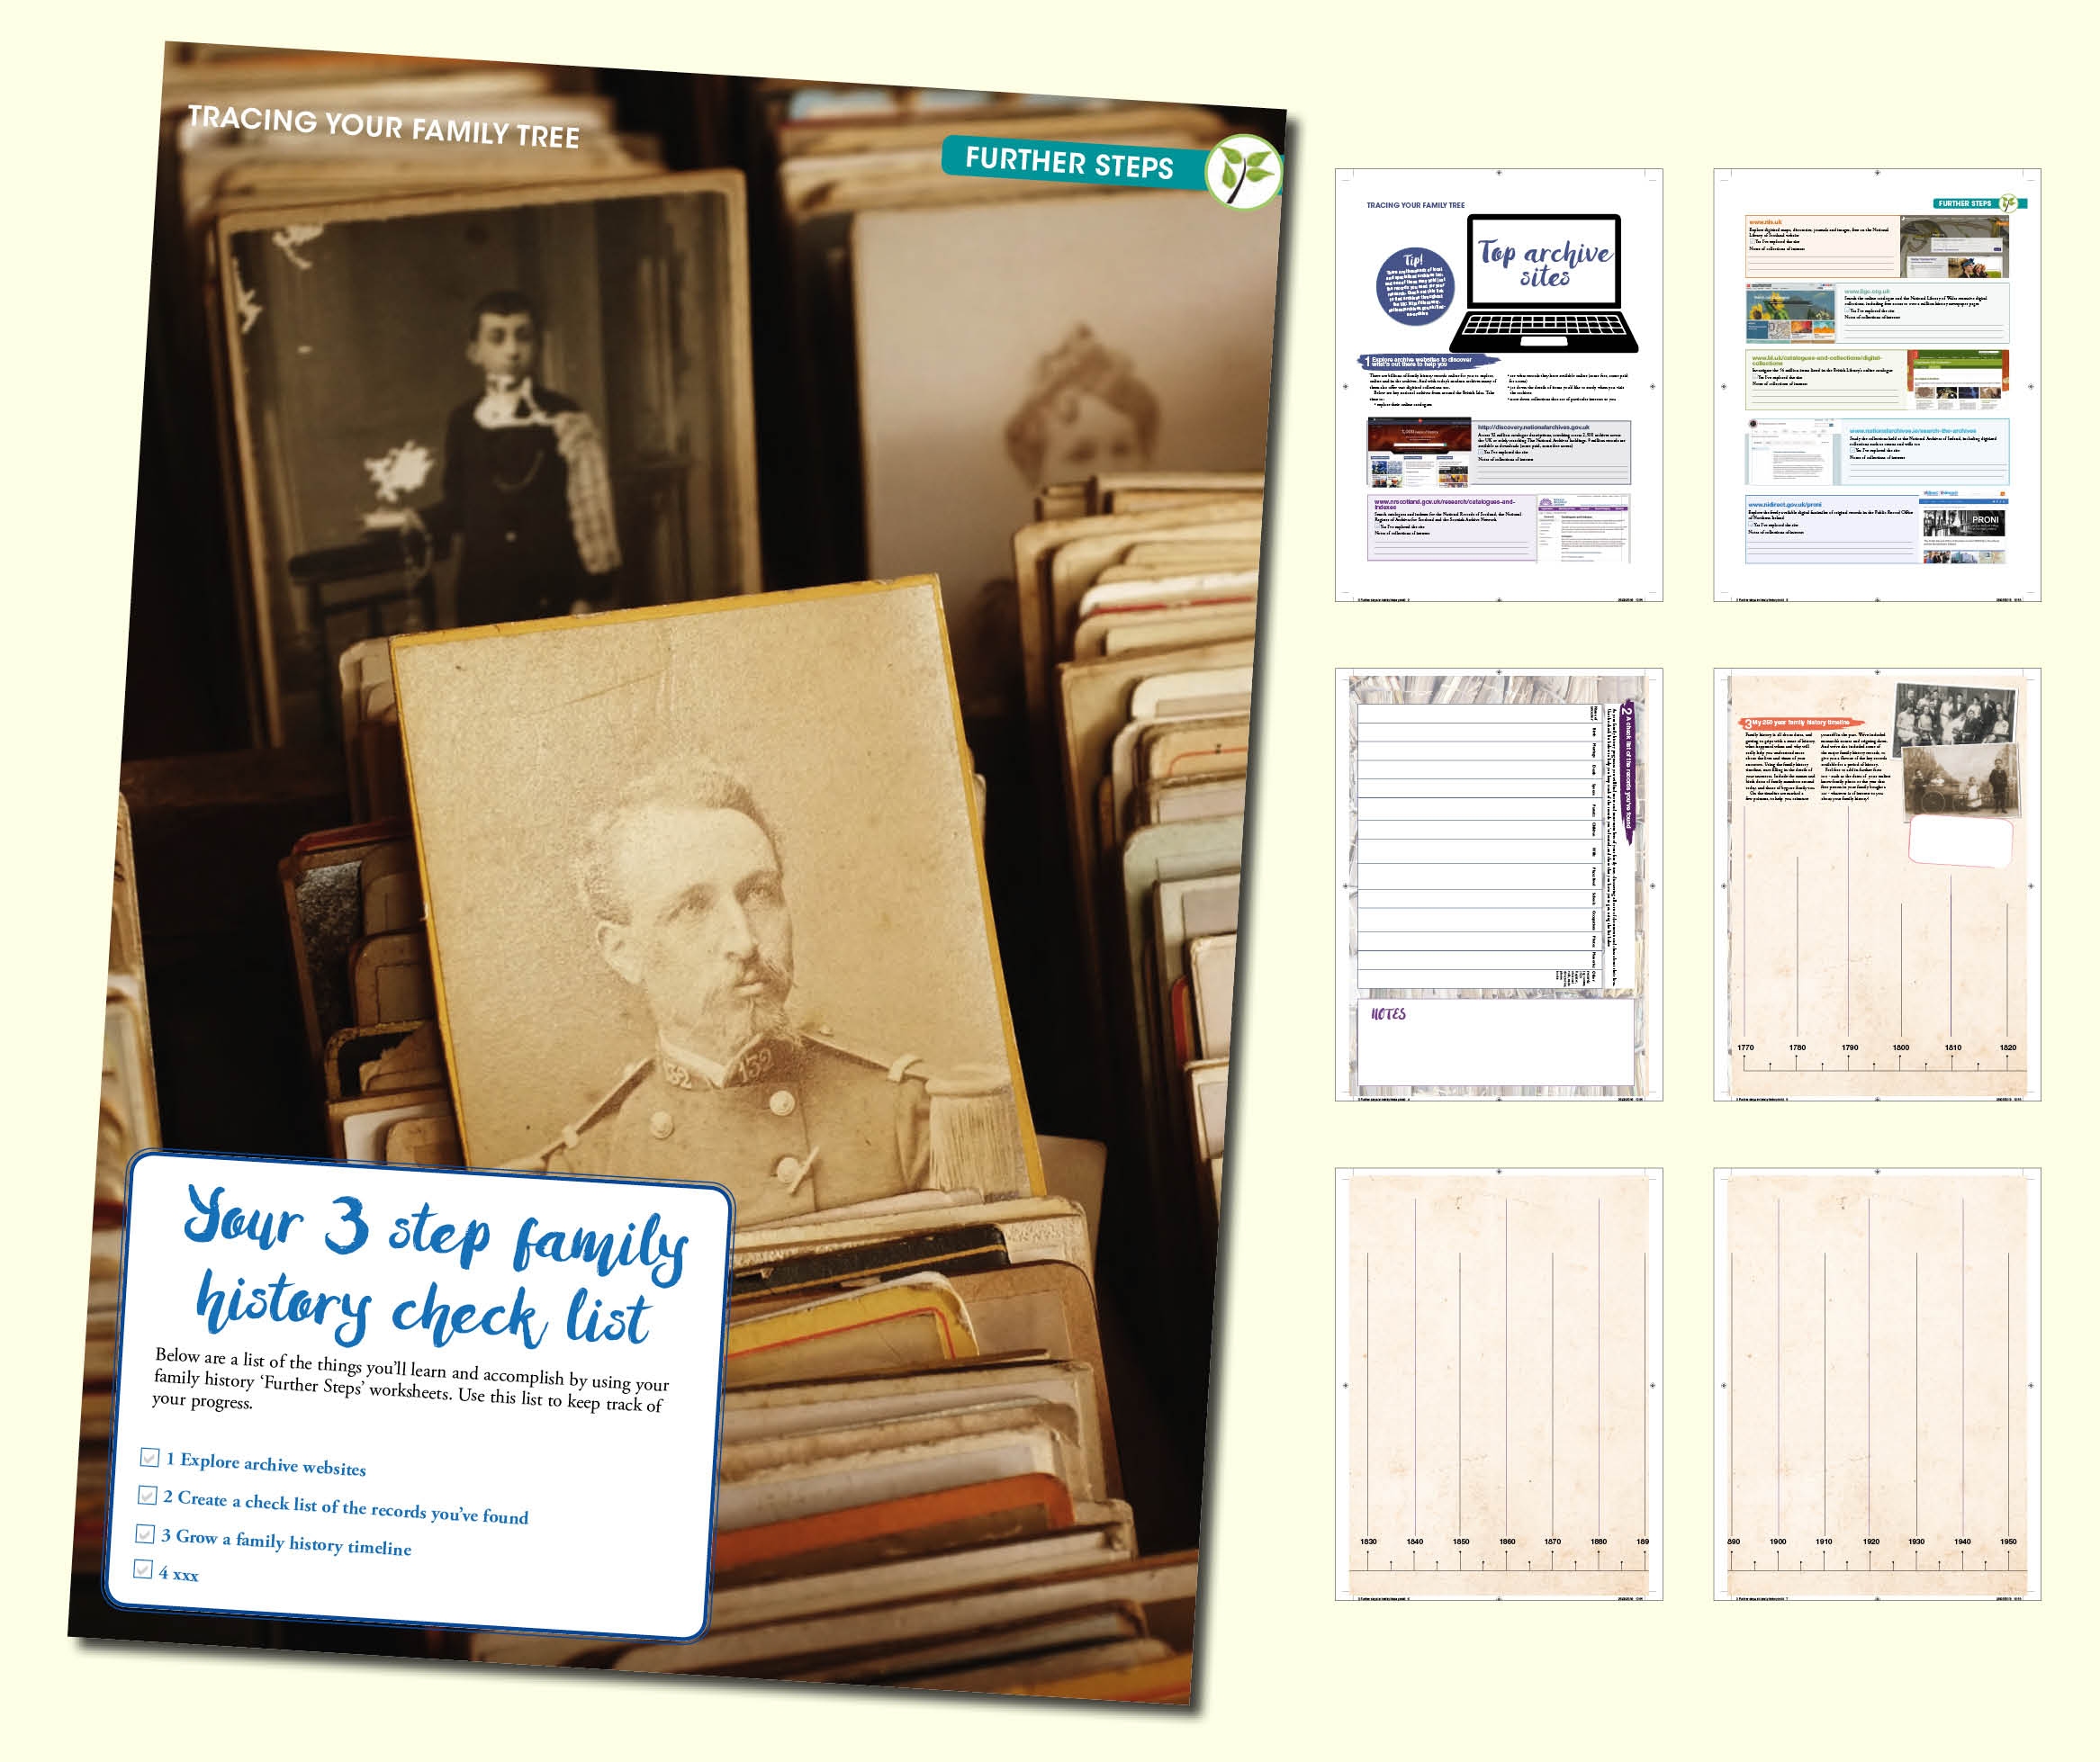 Tracing Your Family Tree Worksheet Further Steps